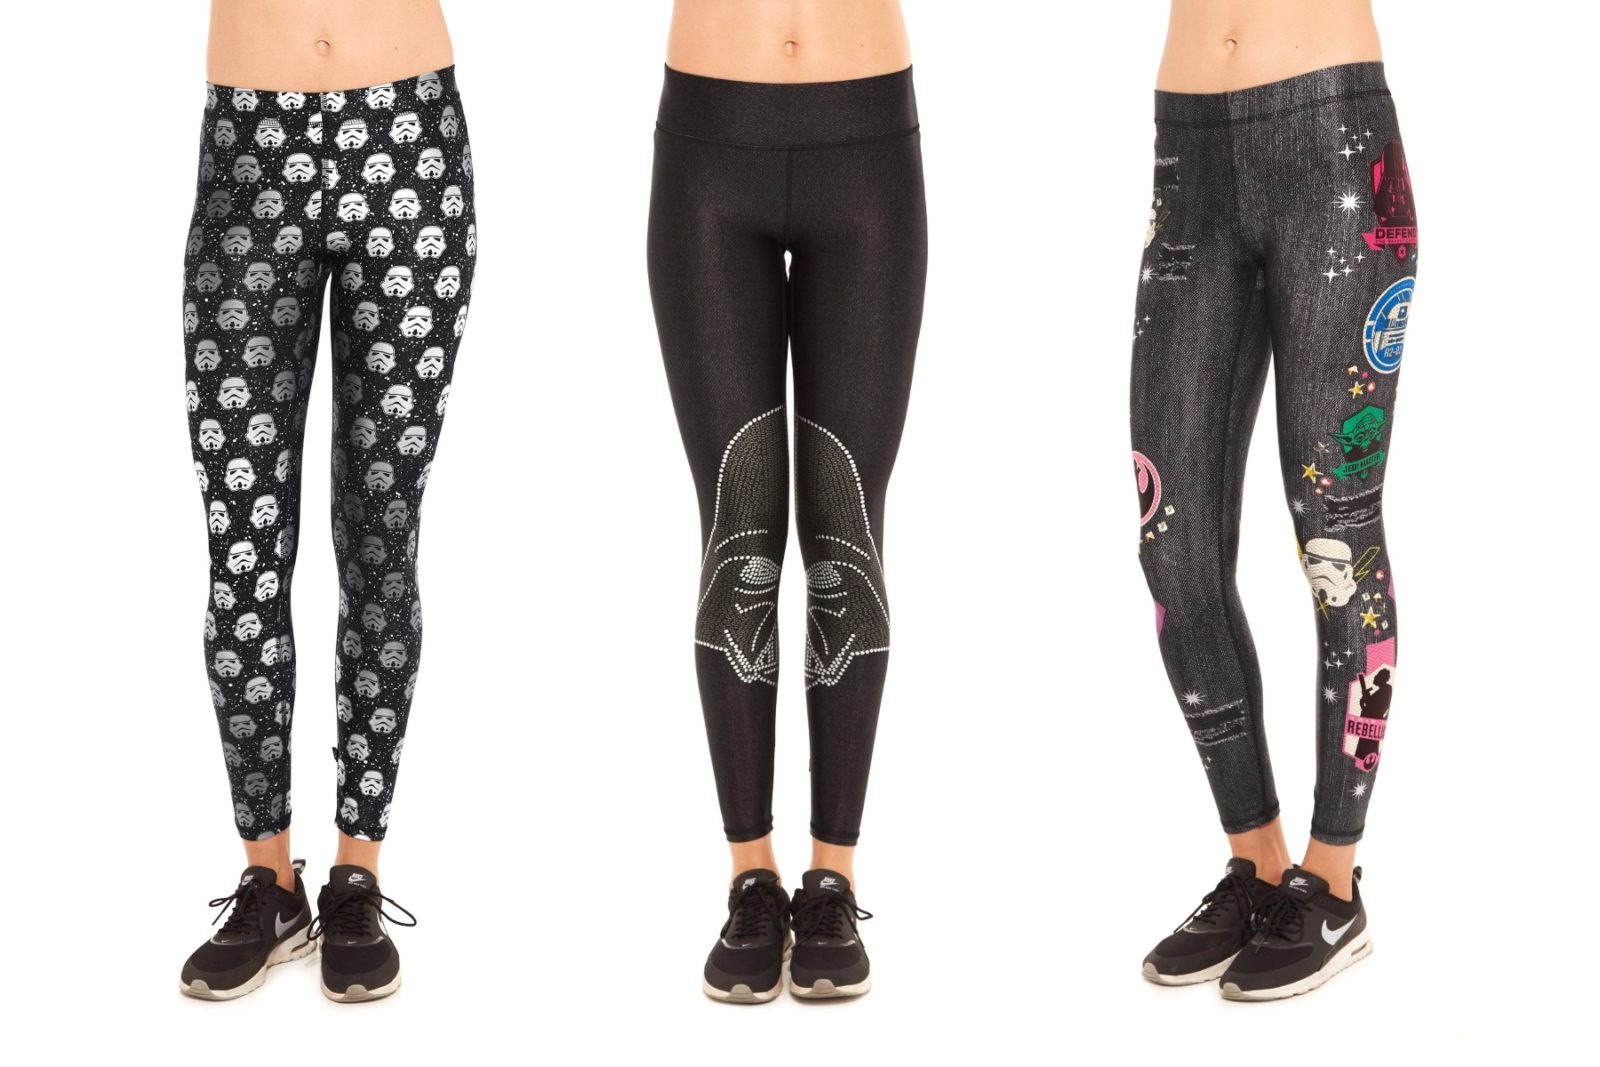 New Terez x Star Wars Leggings Collection